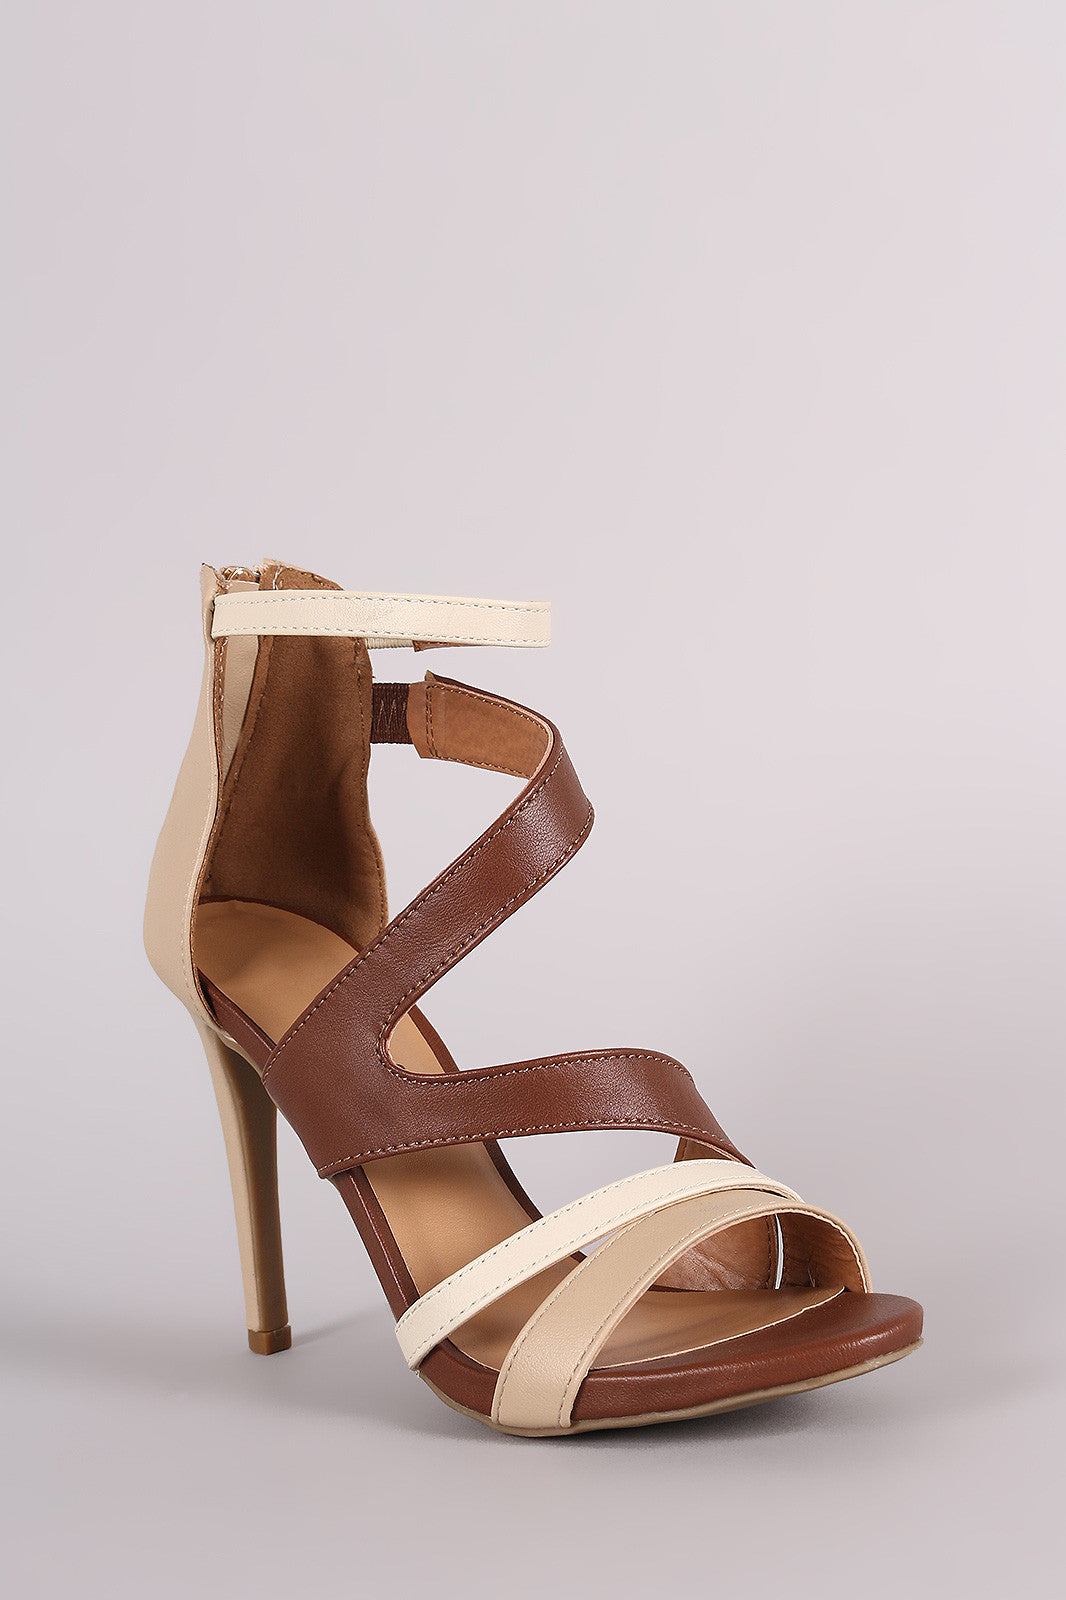 Anne Michelle Strappy Slanted Peep Toe Stiletto Heel - Thick 'N' Curvy Shop - 2